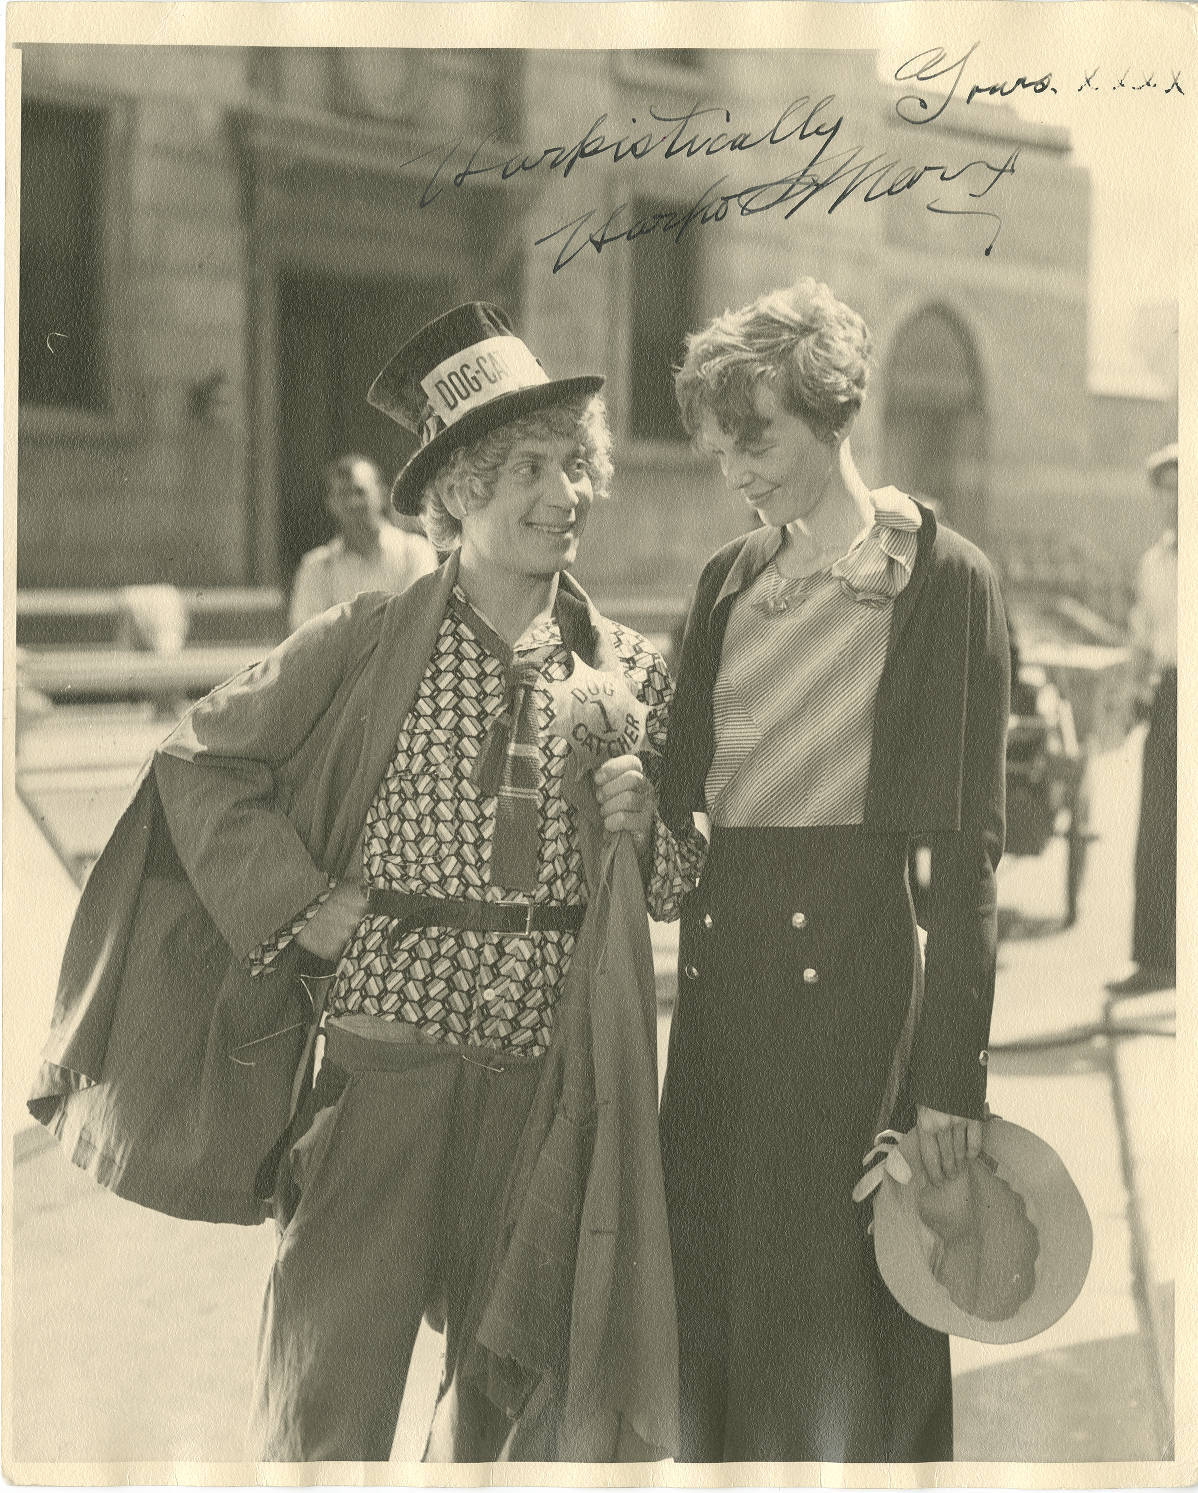 awesomepeoplehangingouttogether:  Harpo Marx and Amelia Earhart